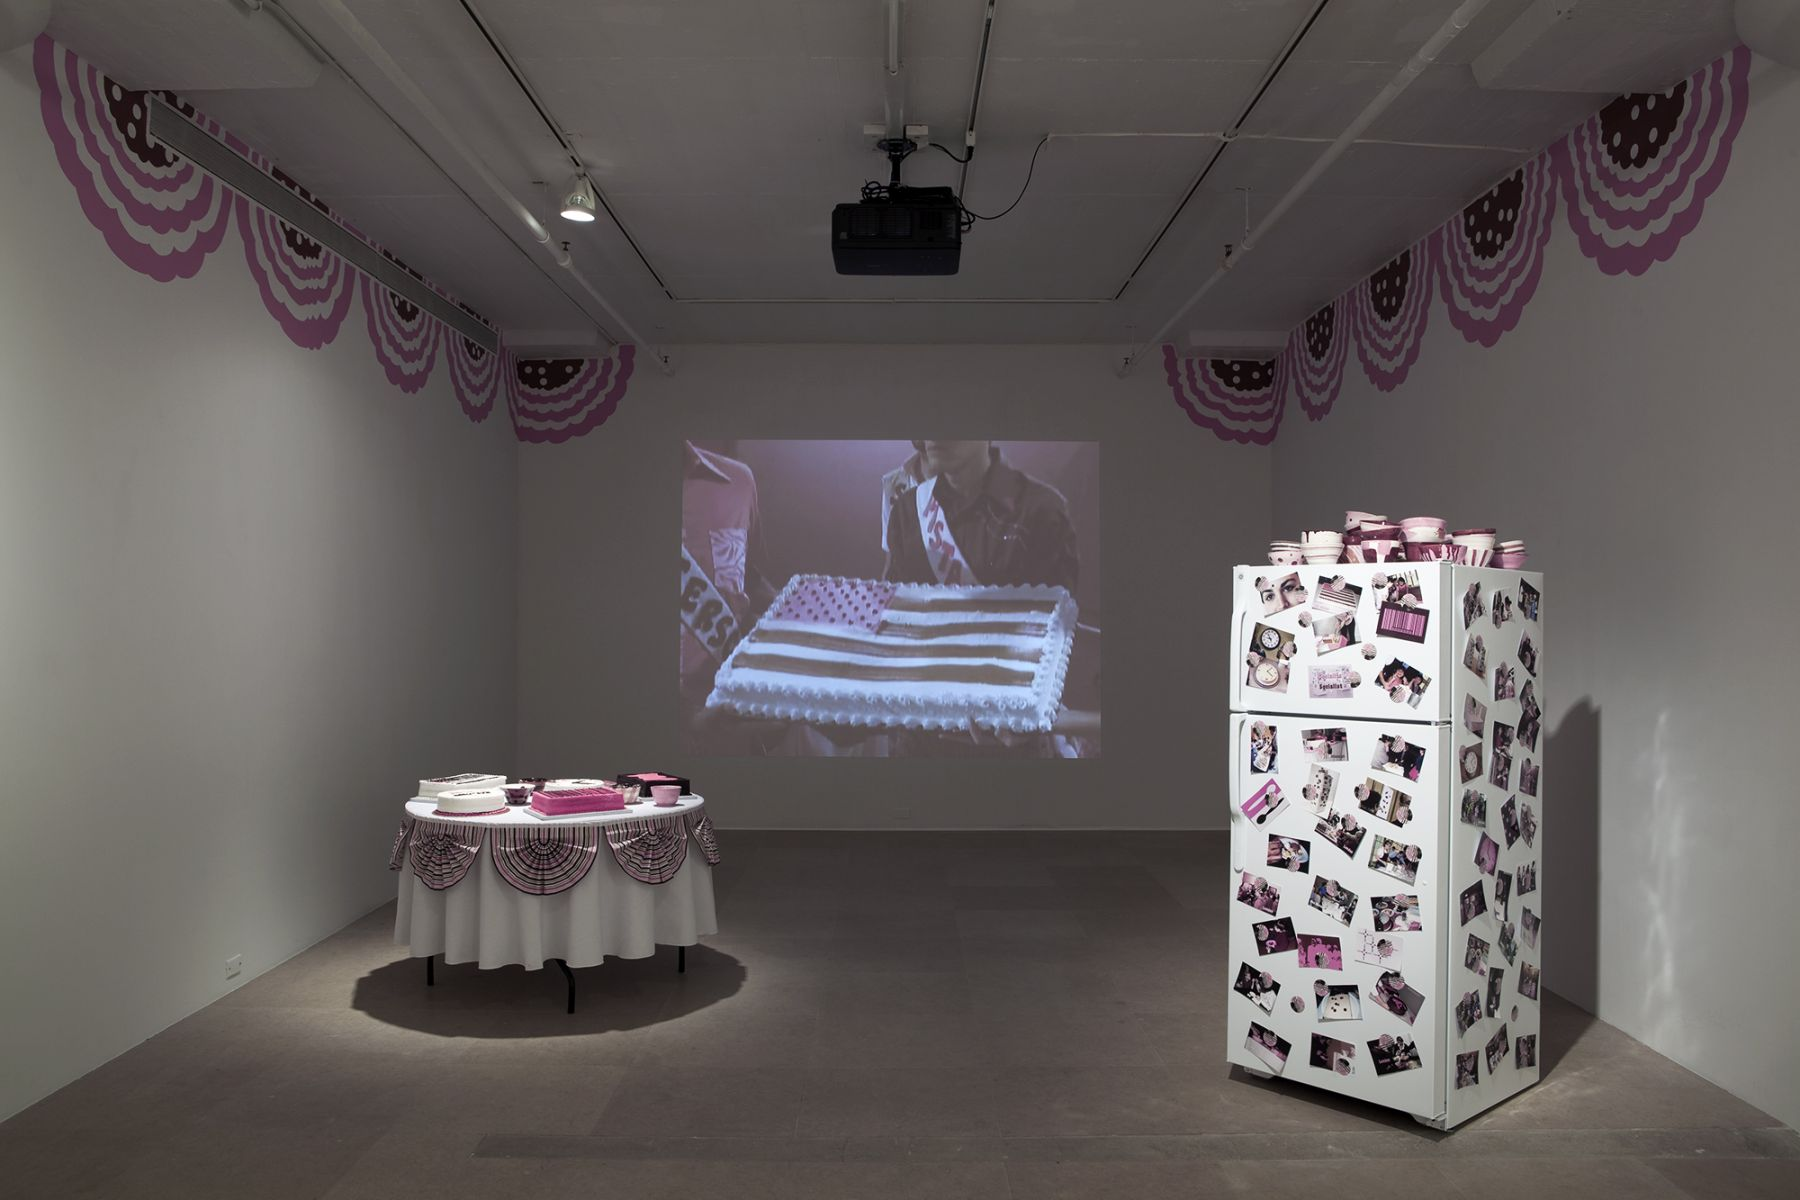 David Robbins, Ice Cream Social, 1993-2011, mixed media installation, dimensions variable